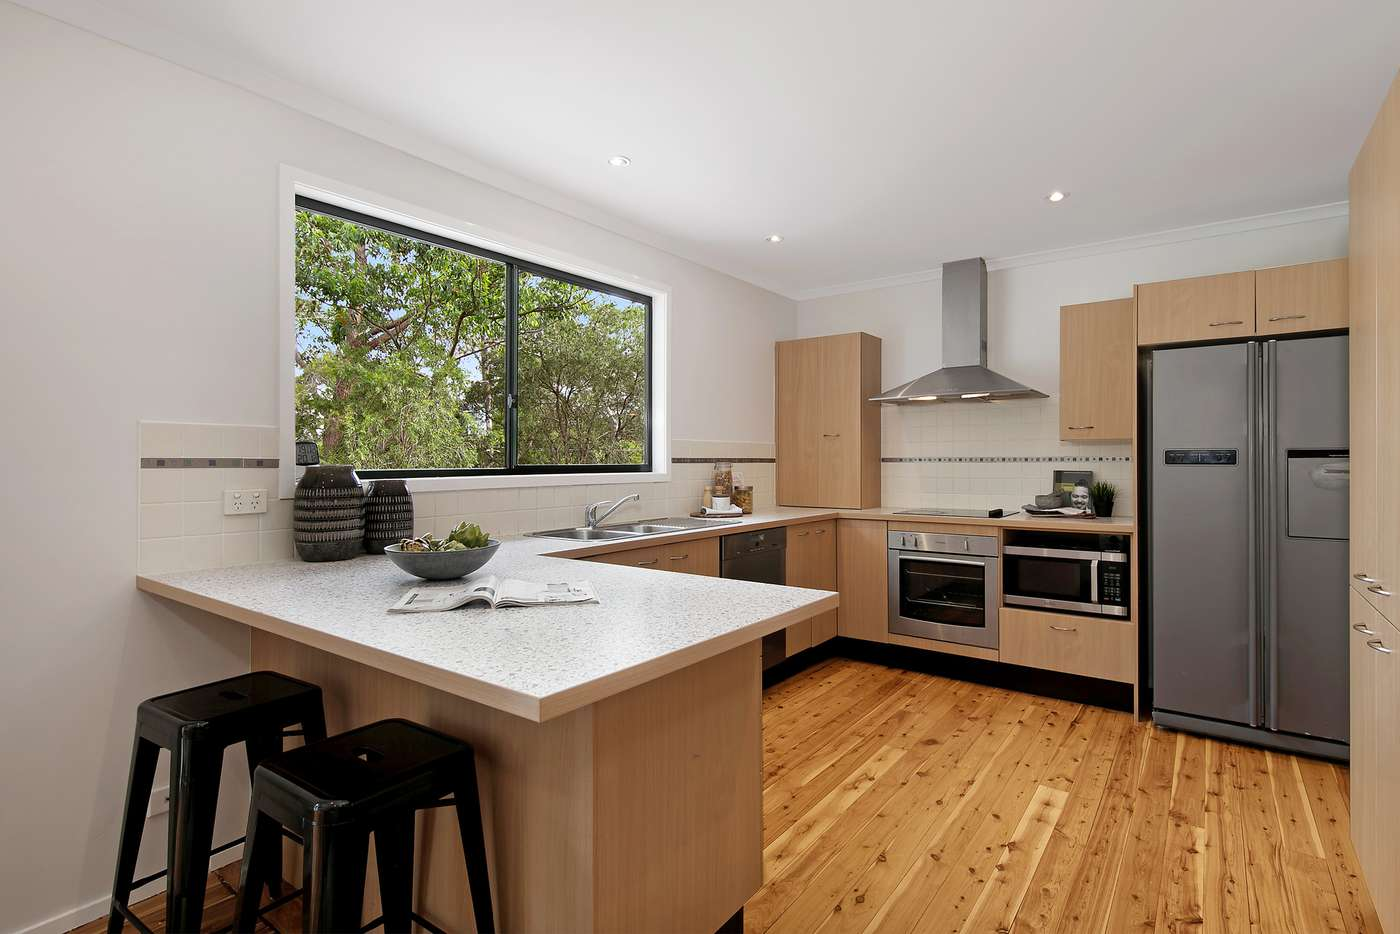 Fifth view of Homely house listing, 142 Duneba Drive, Westleigh NSW 2120